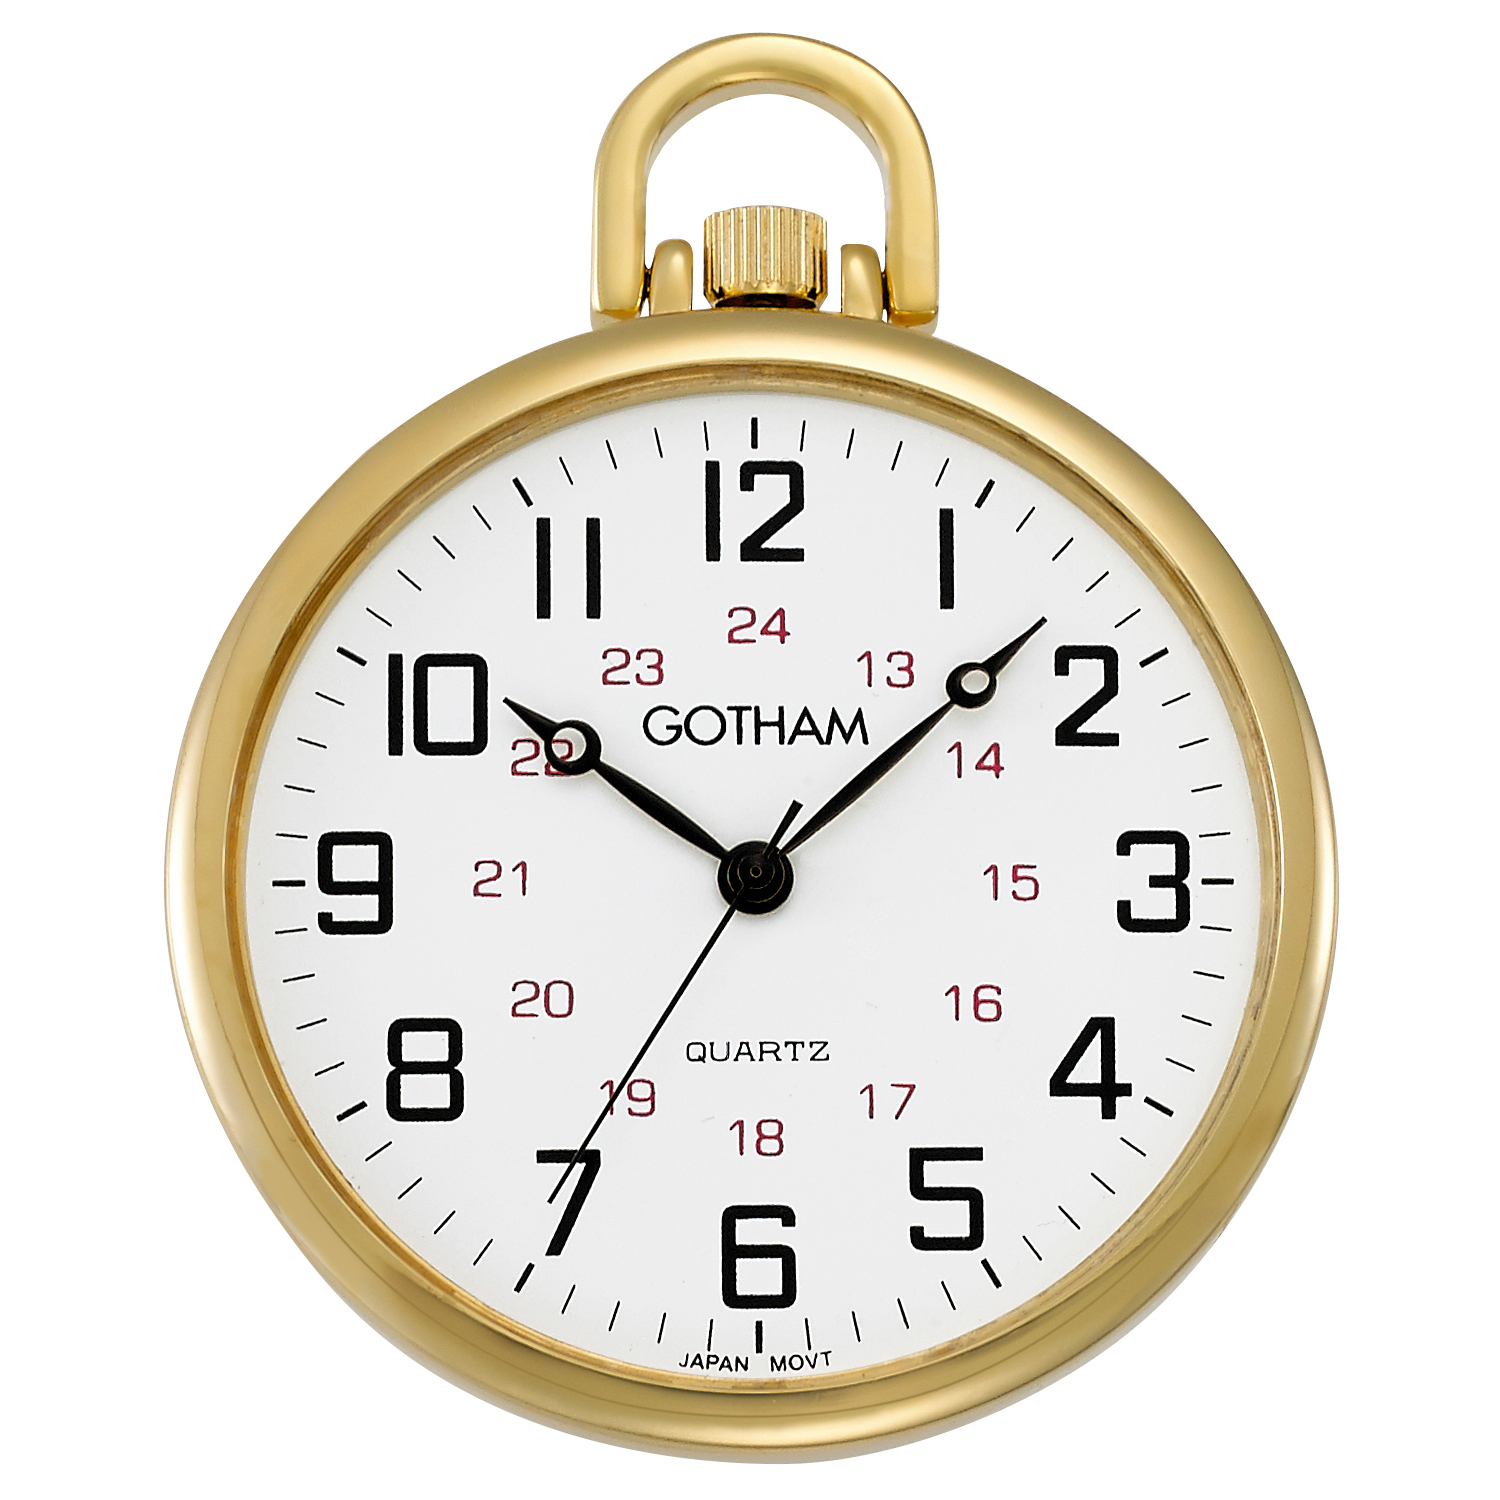 Gotham Men's Railroad Open Face Gold-Tone Analog Quartz Pocket Watch with Chain # GWC15026G